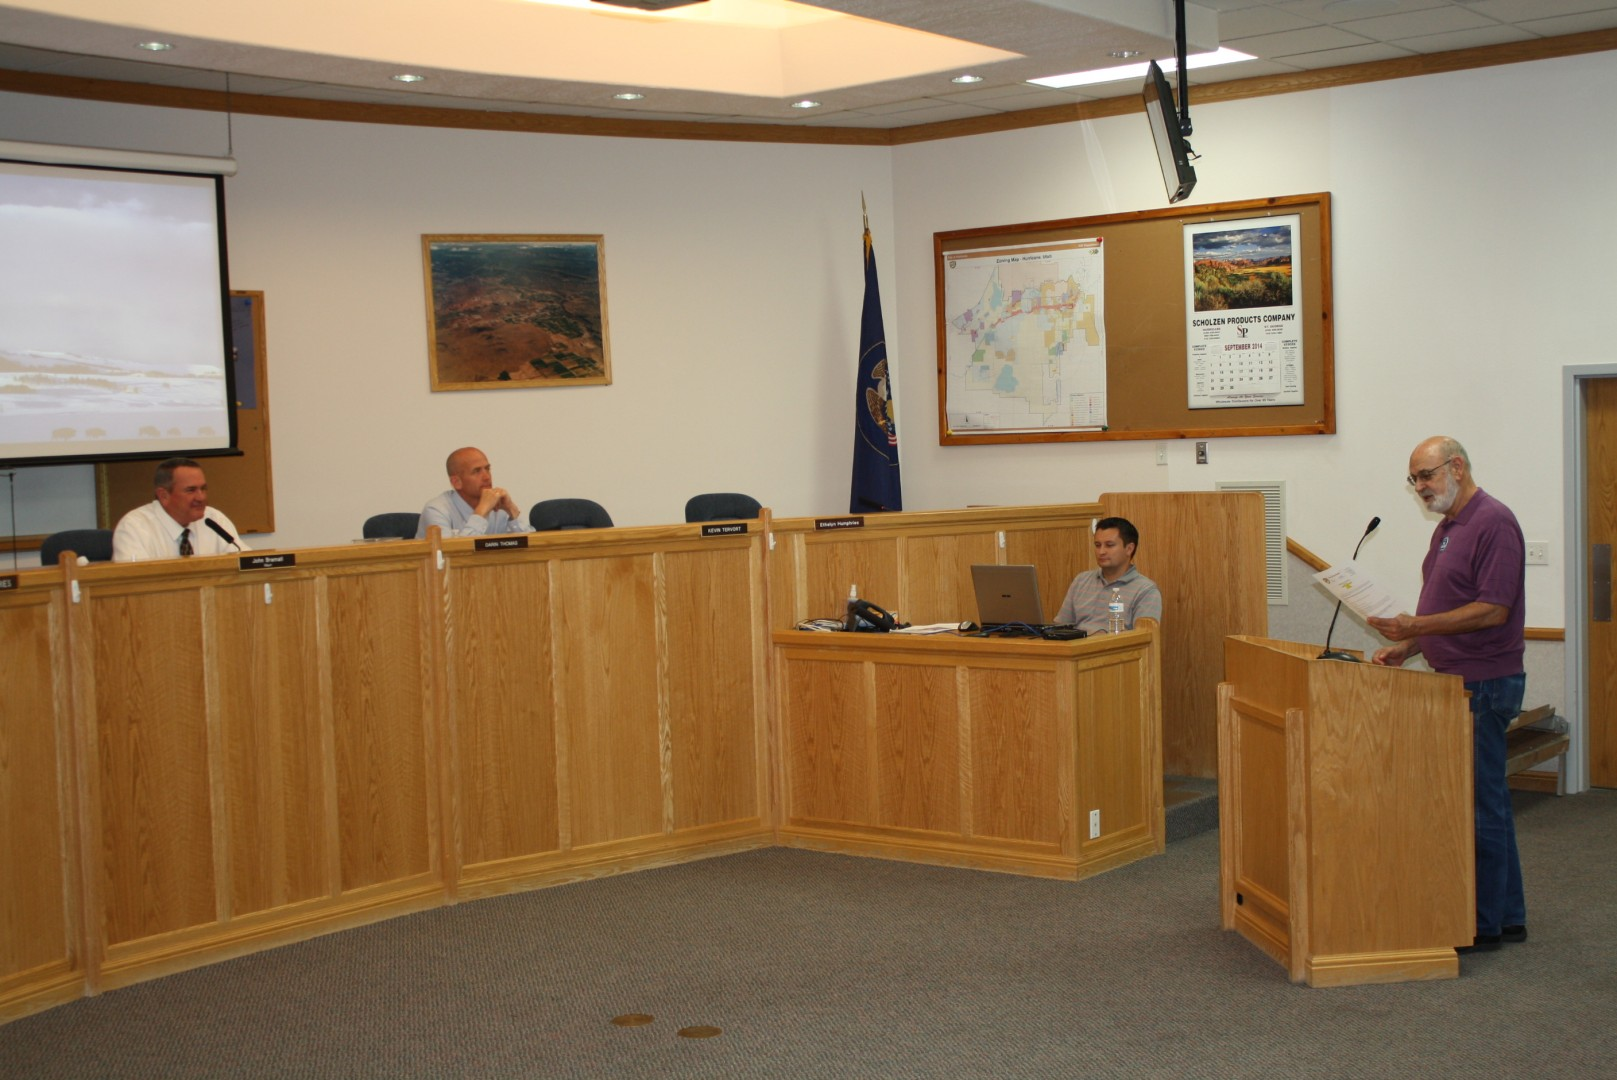 County Commissioner candidate Paul Van Dam introduces himself to the Hurricane City Council, September 4, 2014 | Photo by Reuben Wadsworth, St. George News